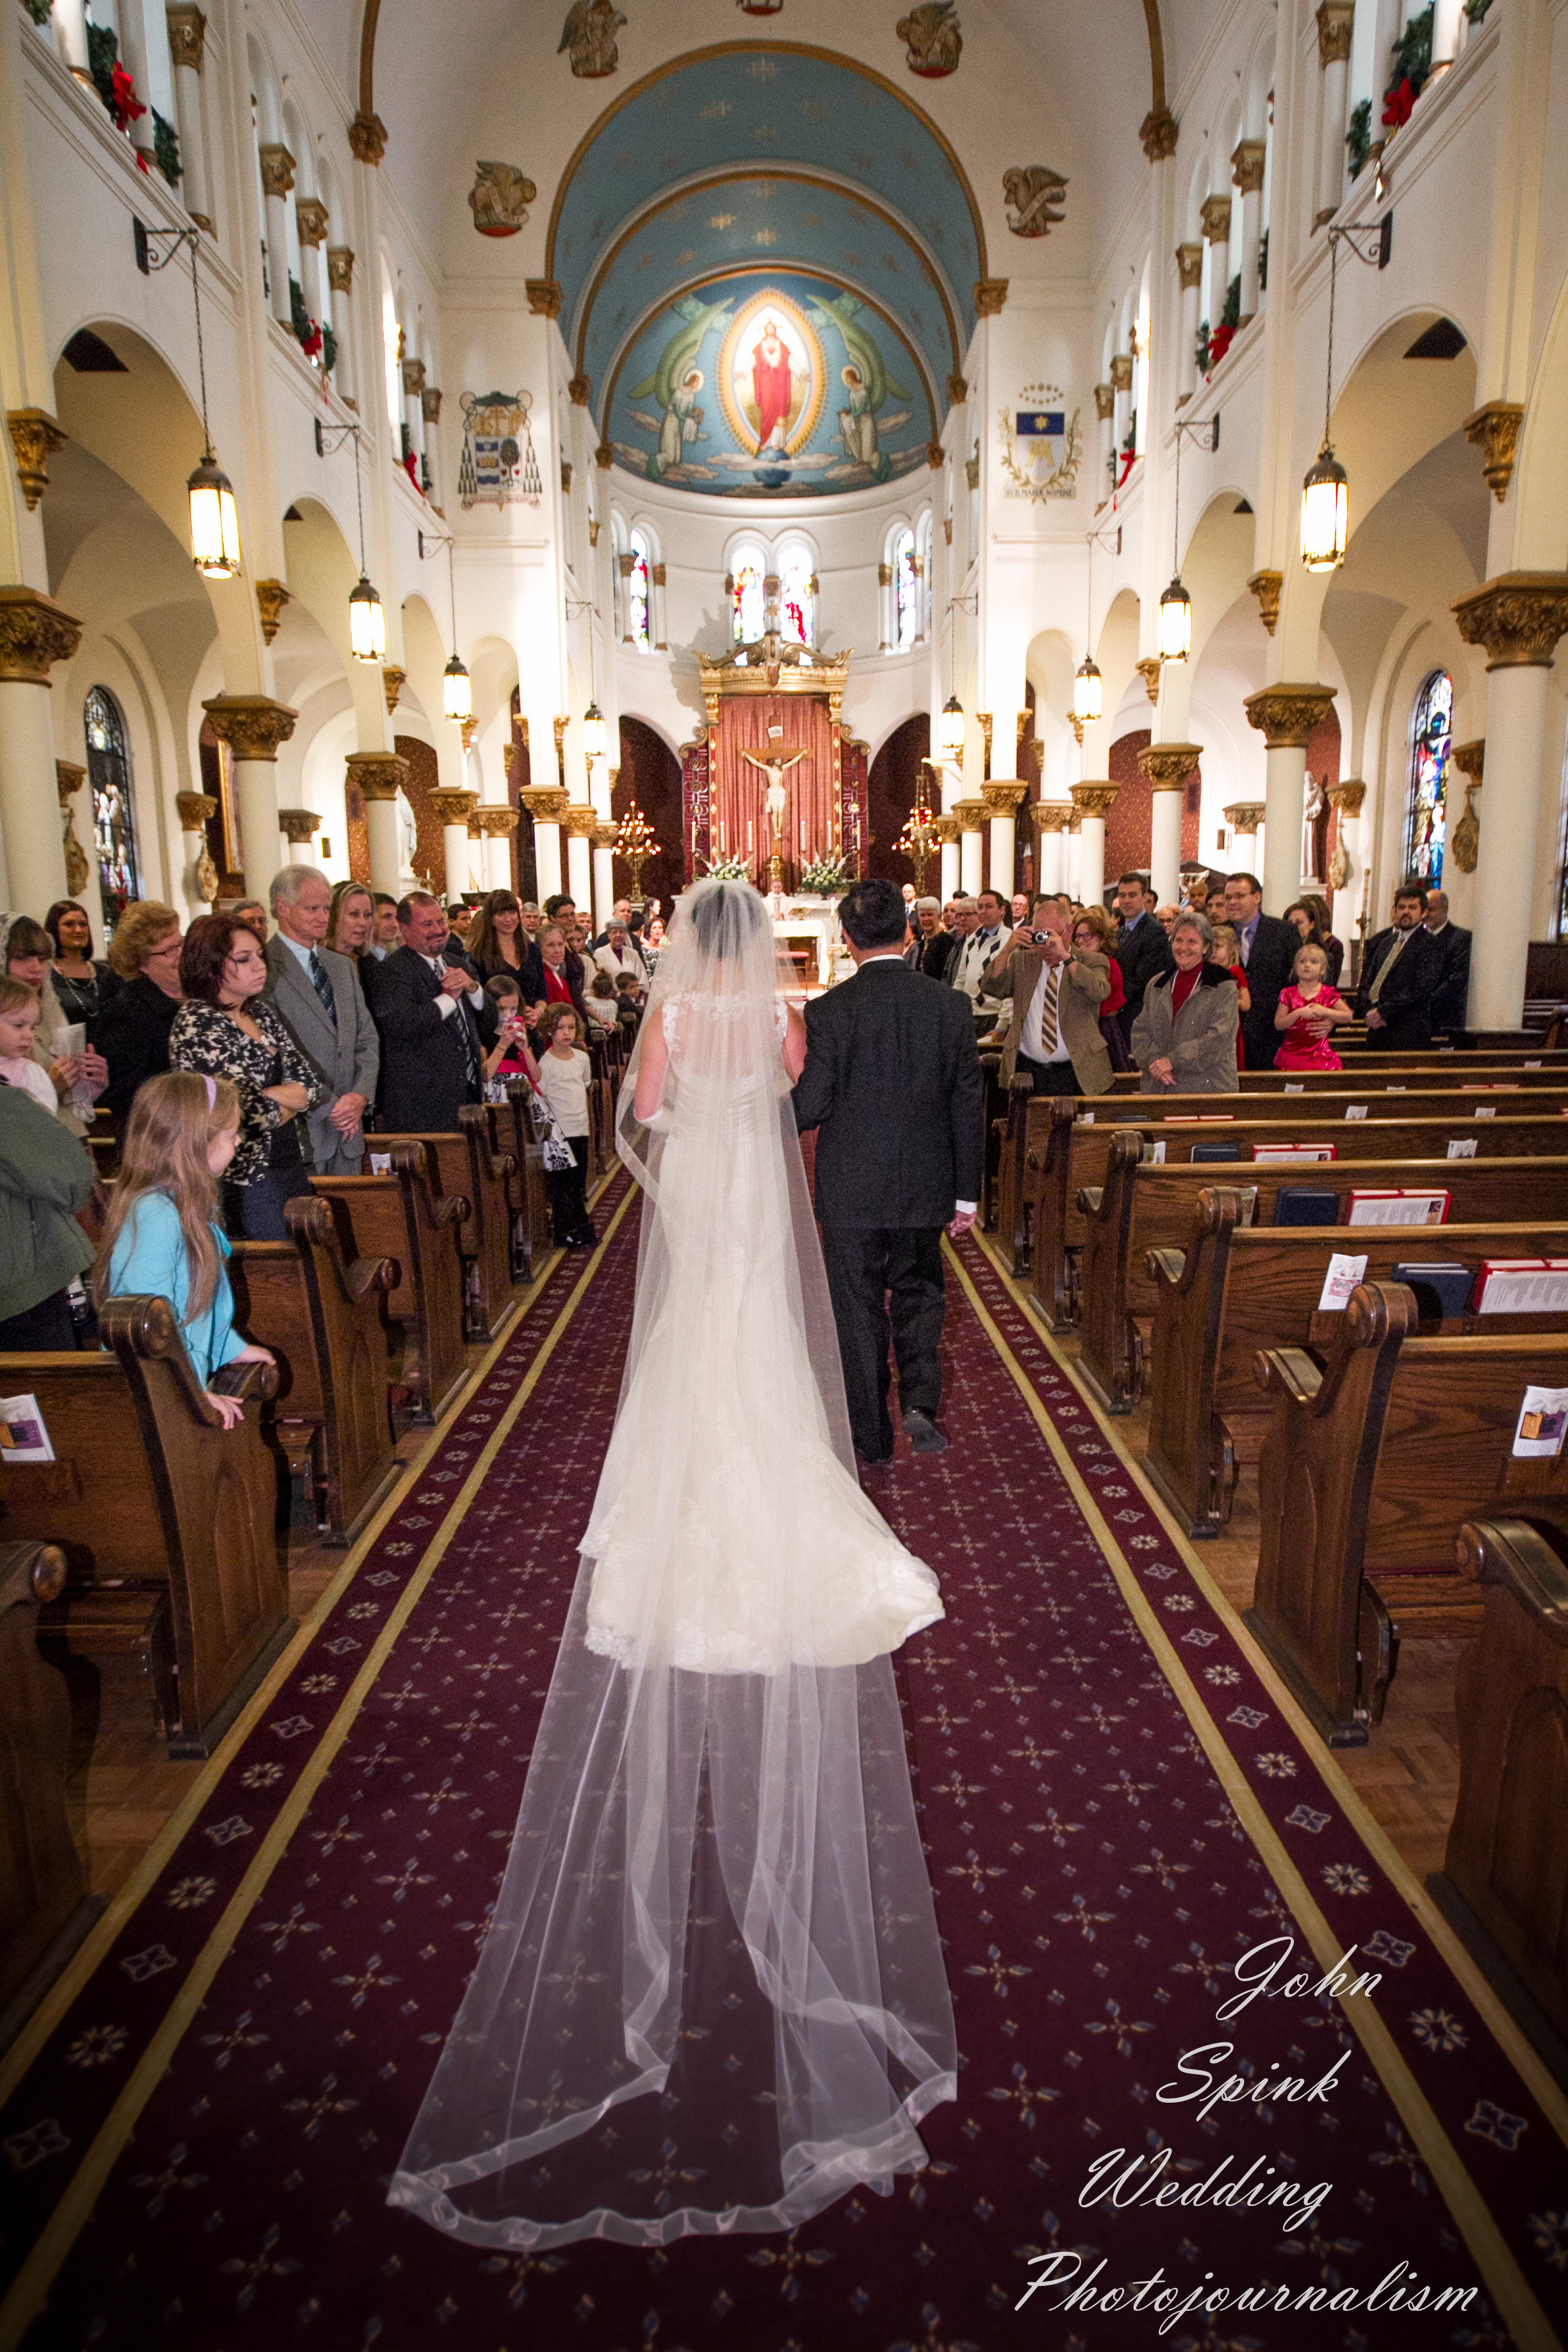 Chapel wedding venues in atlanta ga